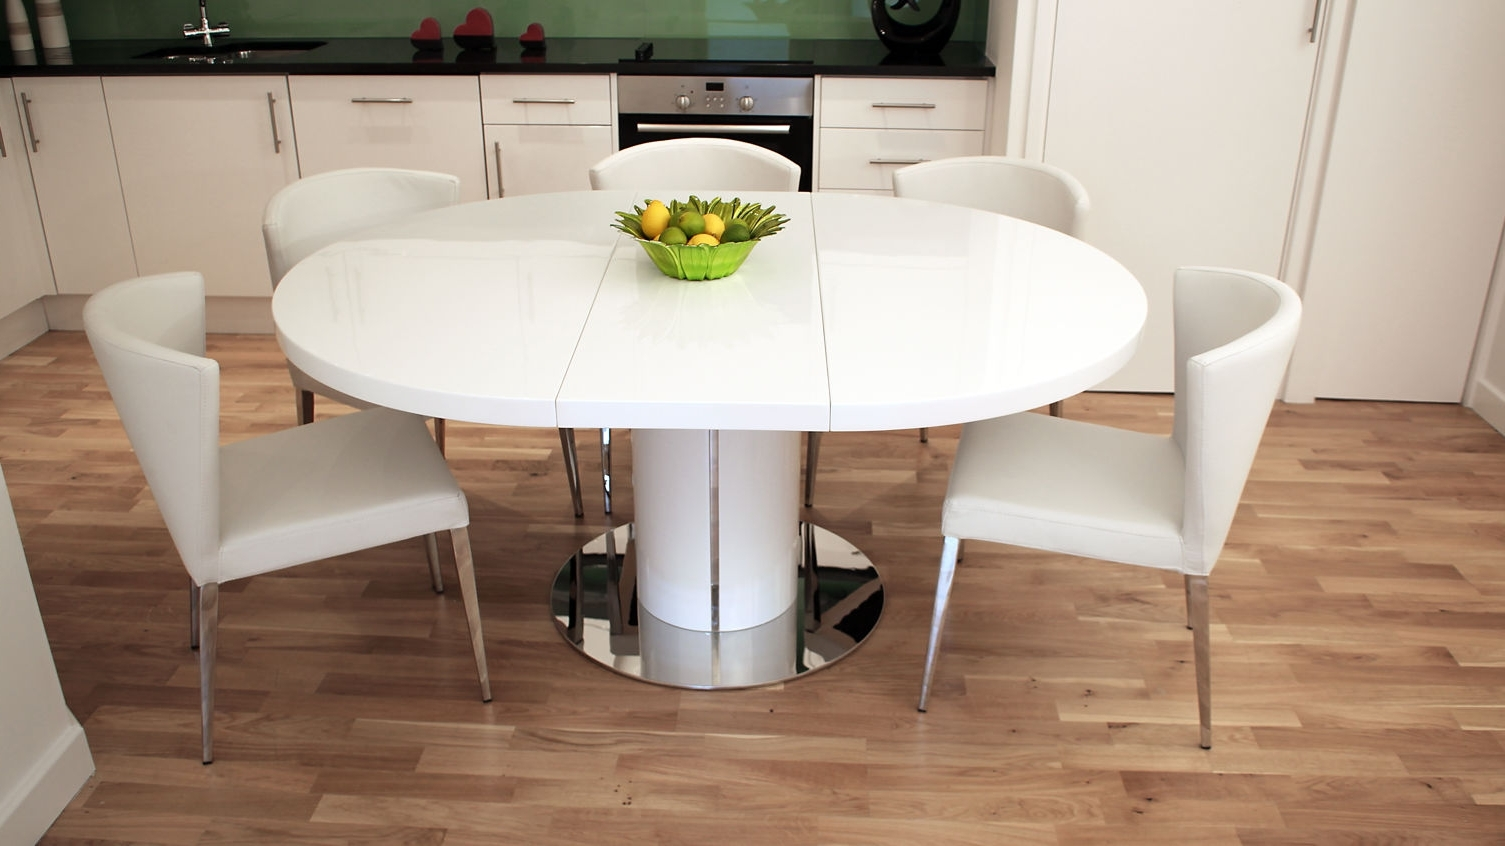 Preferred Image 1033 From Post: Round Pedestal Dining Table – Simplistic For Glass Round Extending Dining Tables (View 13 of 25)